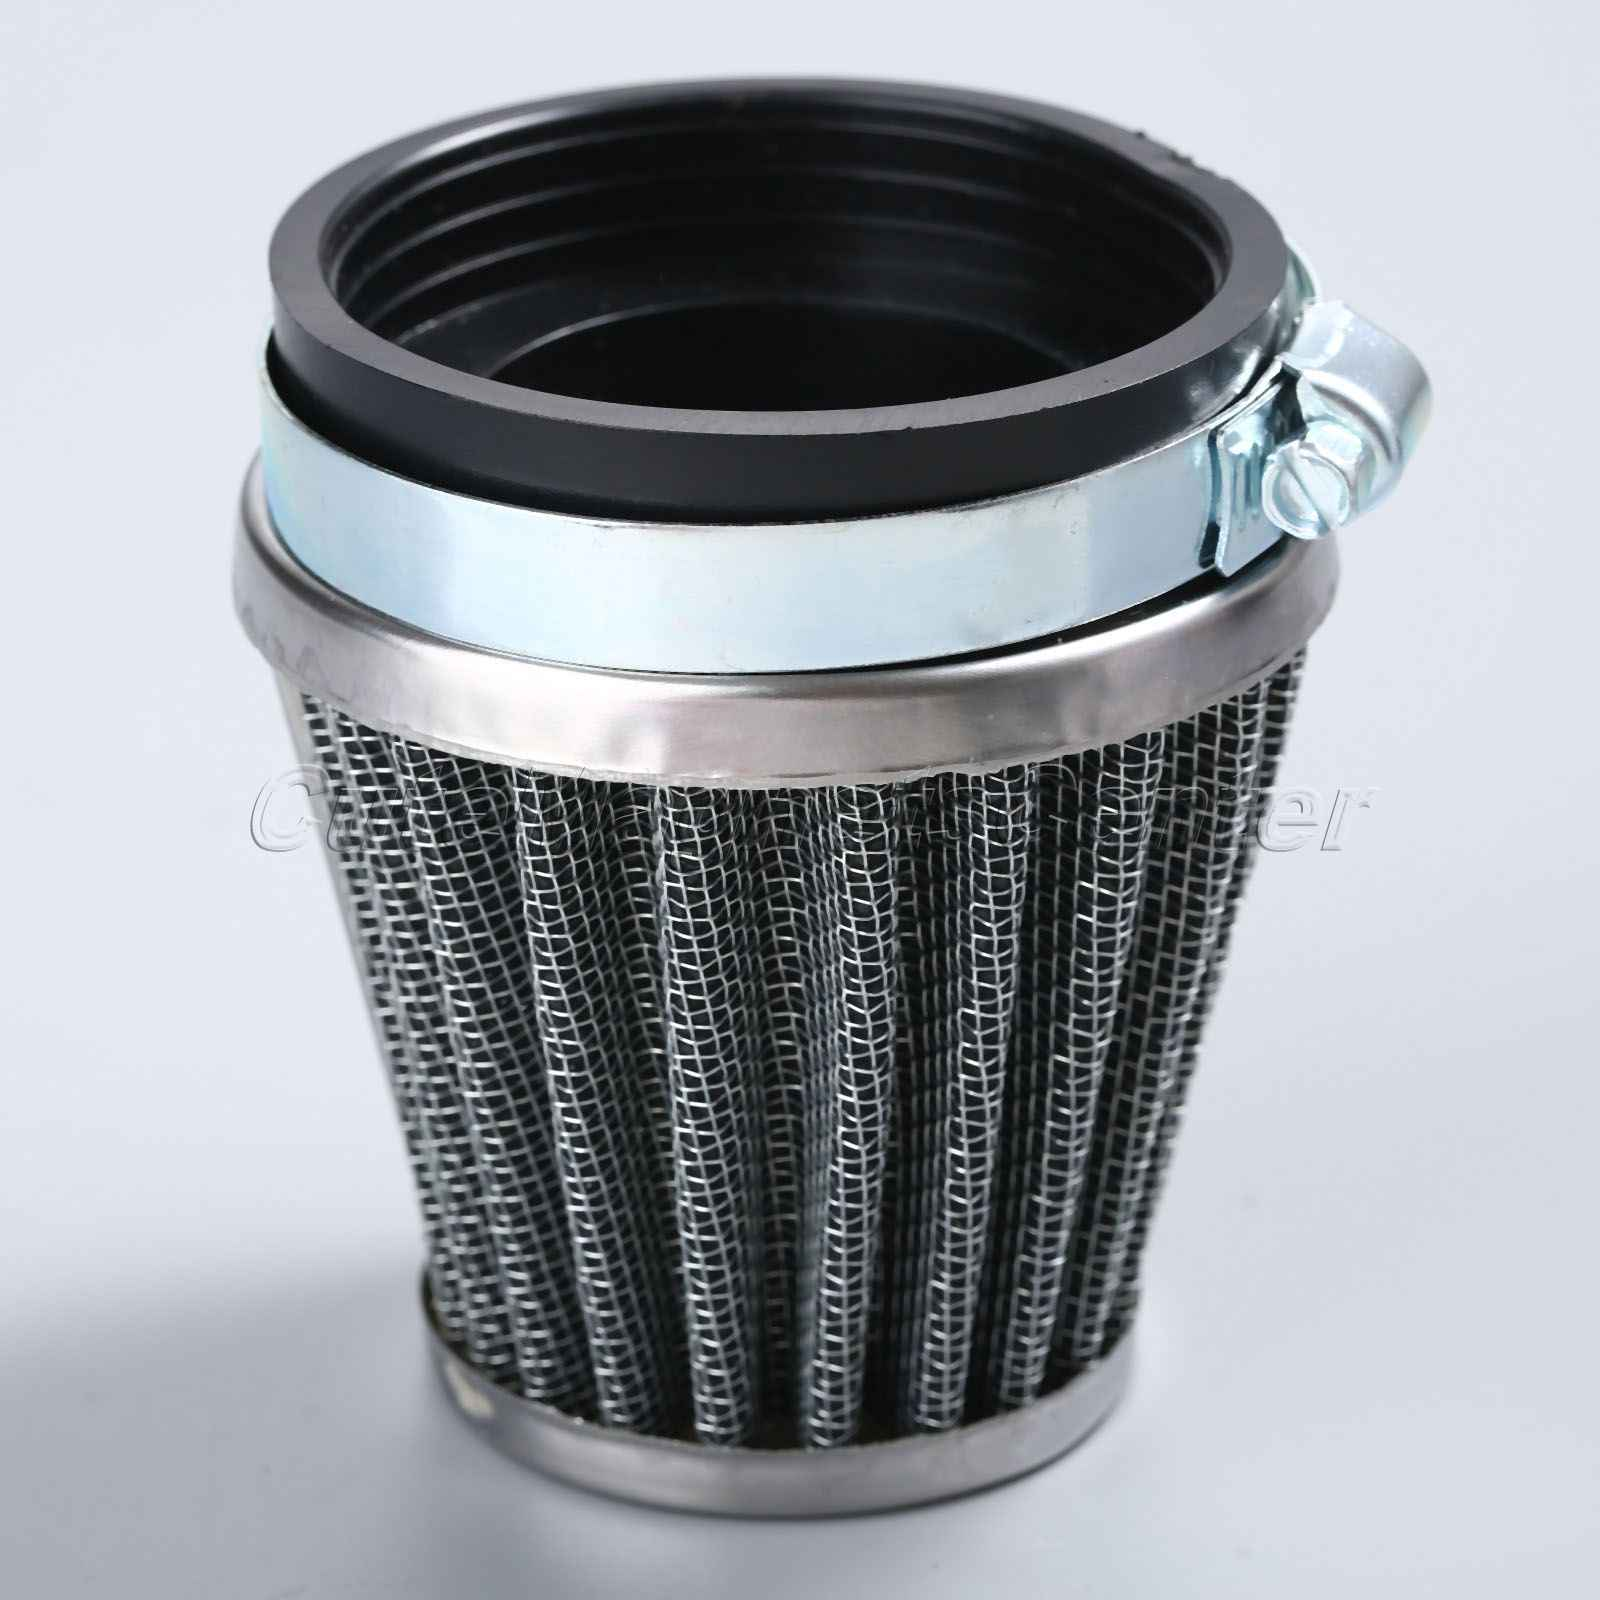 60mm 2 Layer Steel Net Filter Gauze Motorcycle Clamp-on Air Filter Cleaner